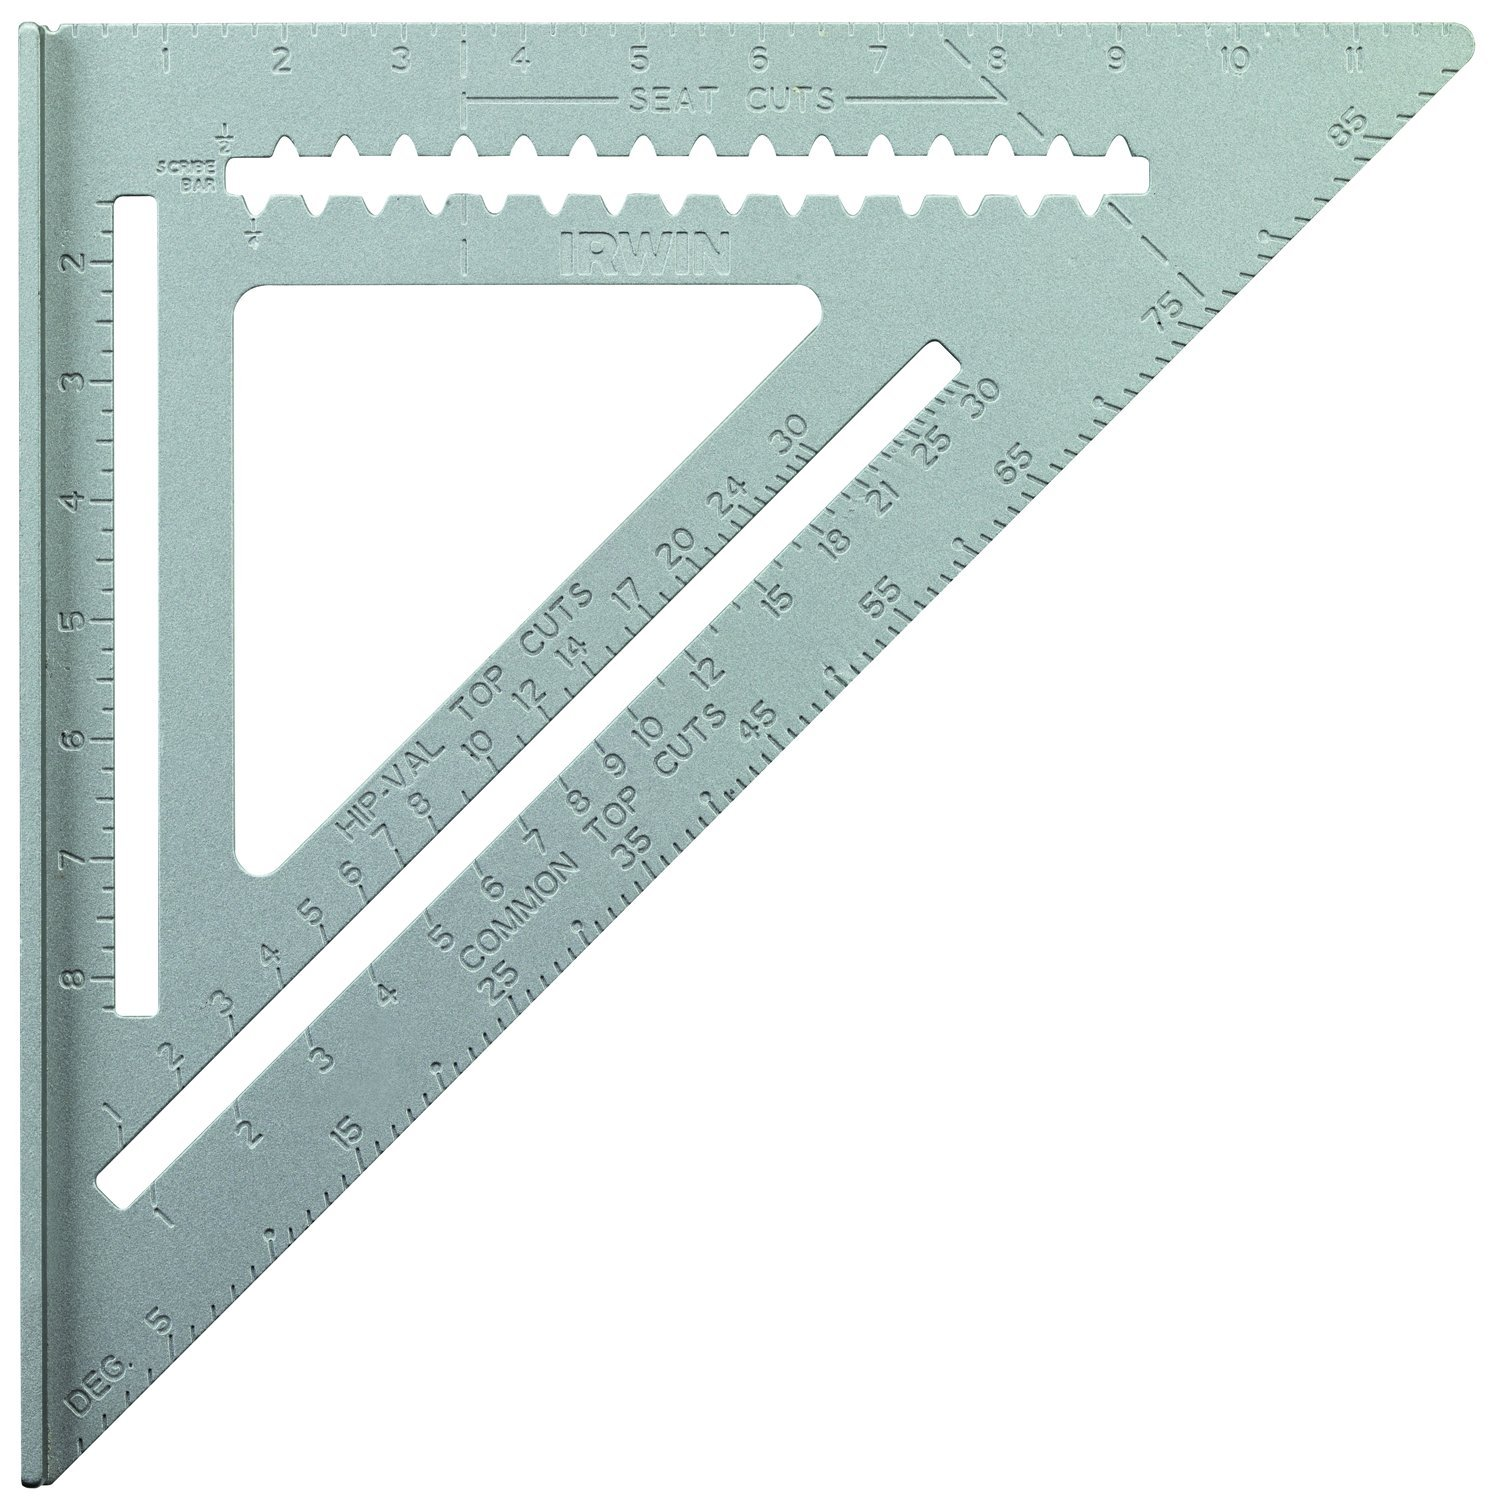 IRWIN Tools Rafter Square, Aluminum, 12-Inch (1794465)